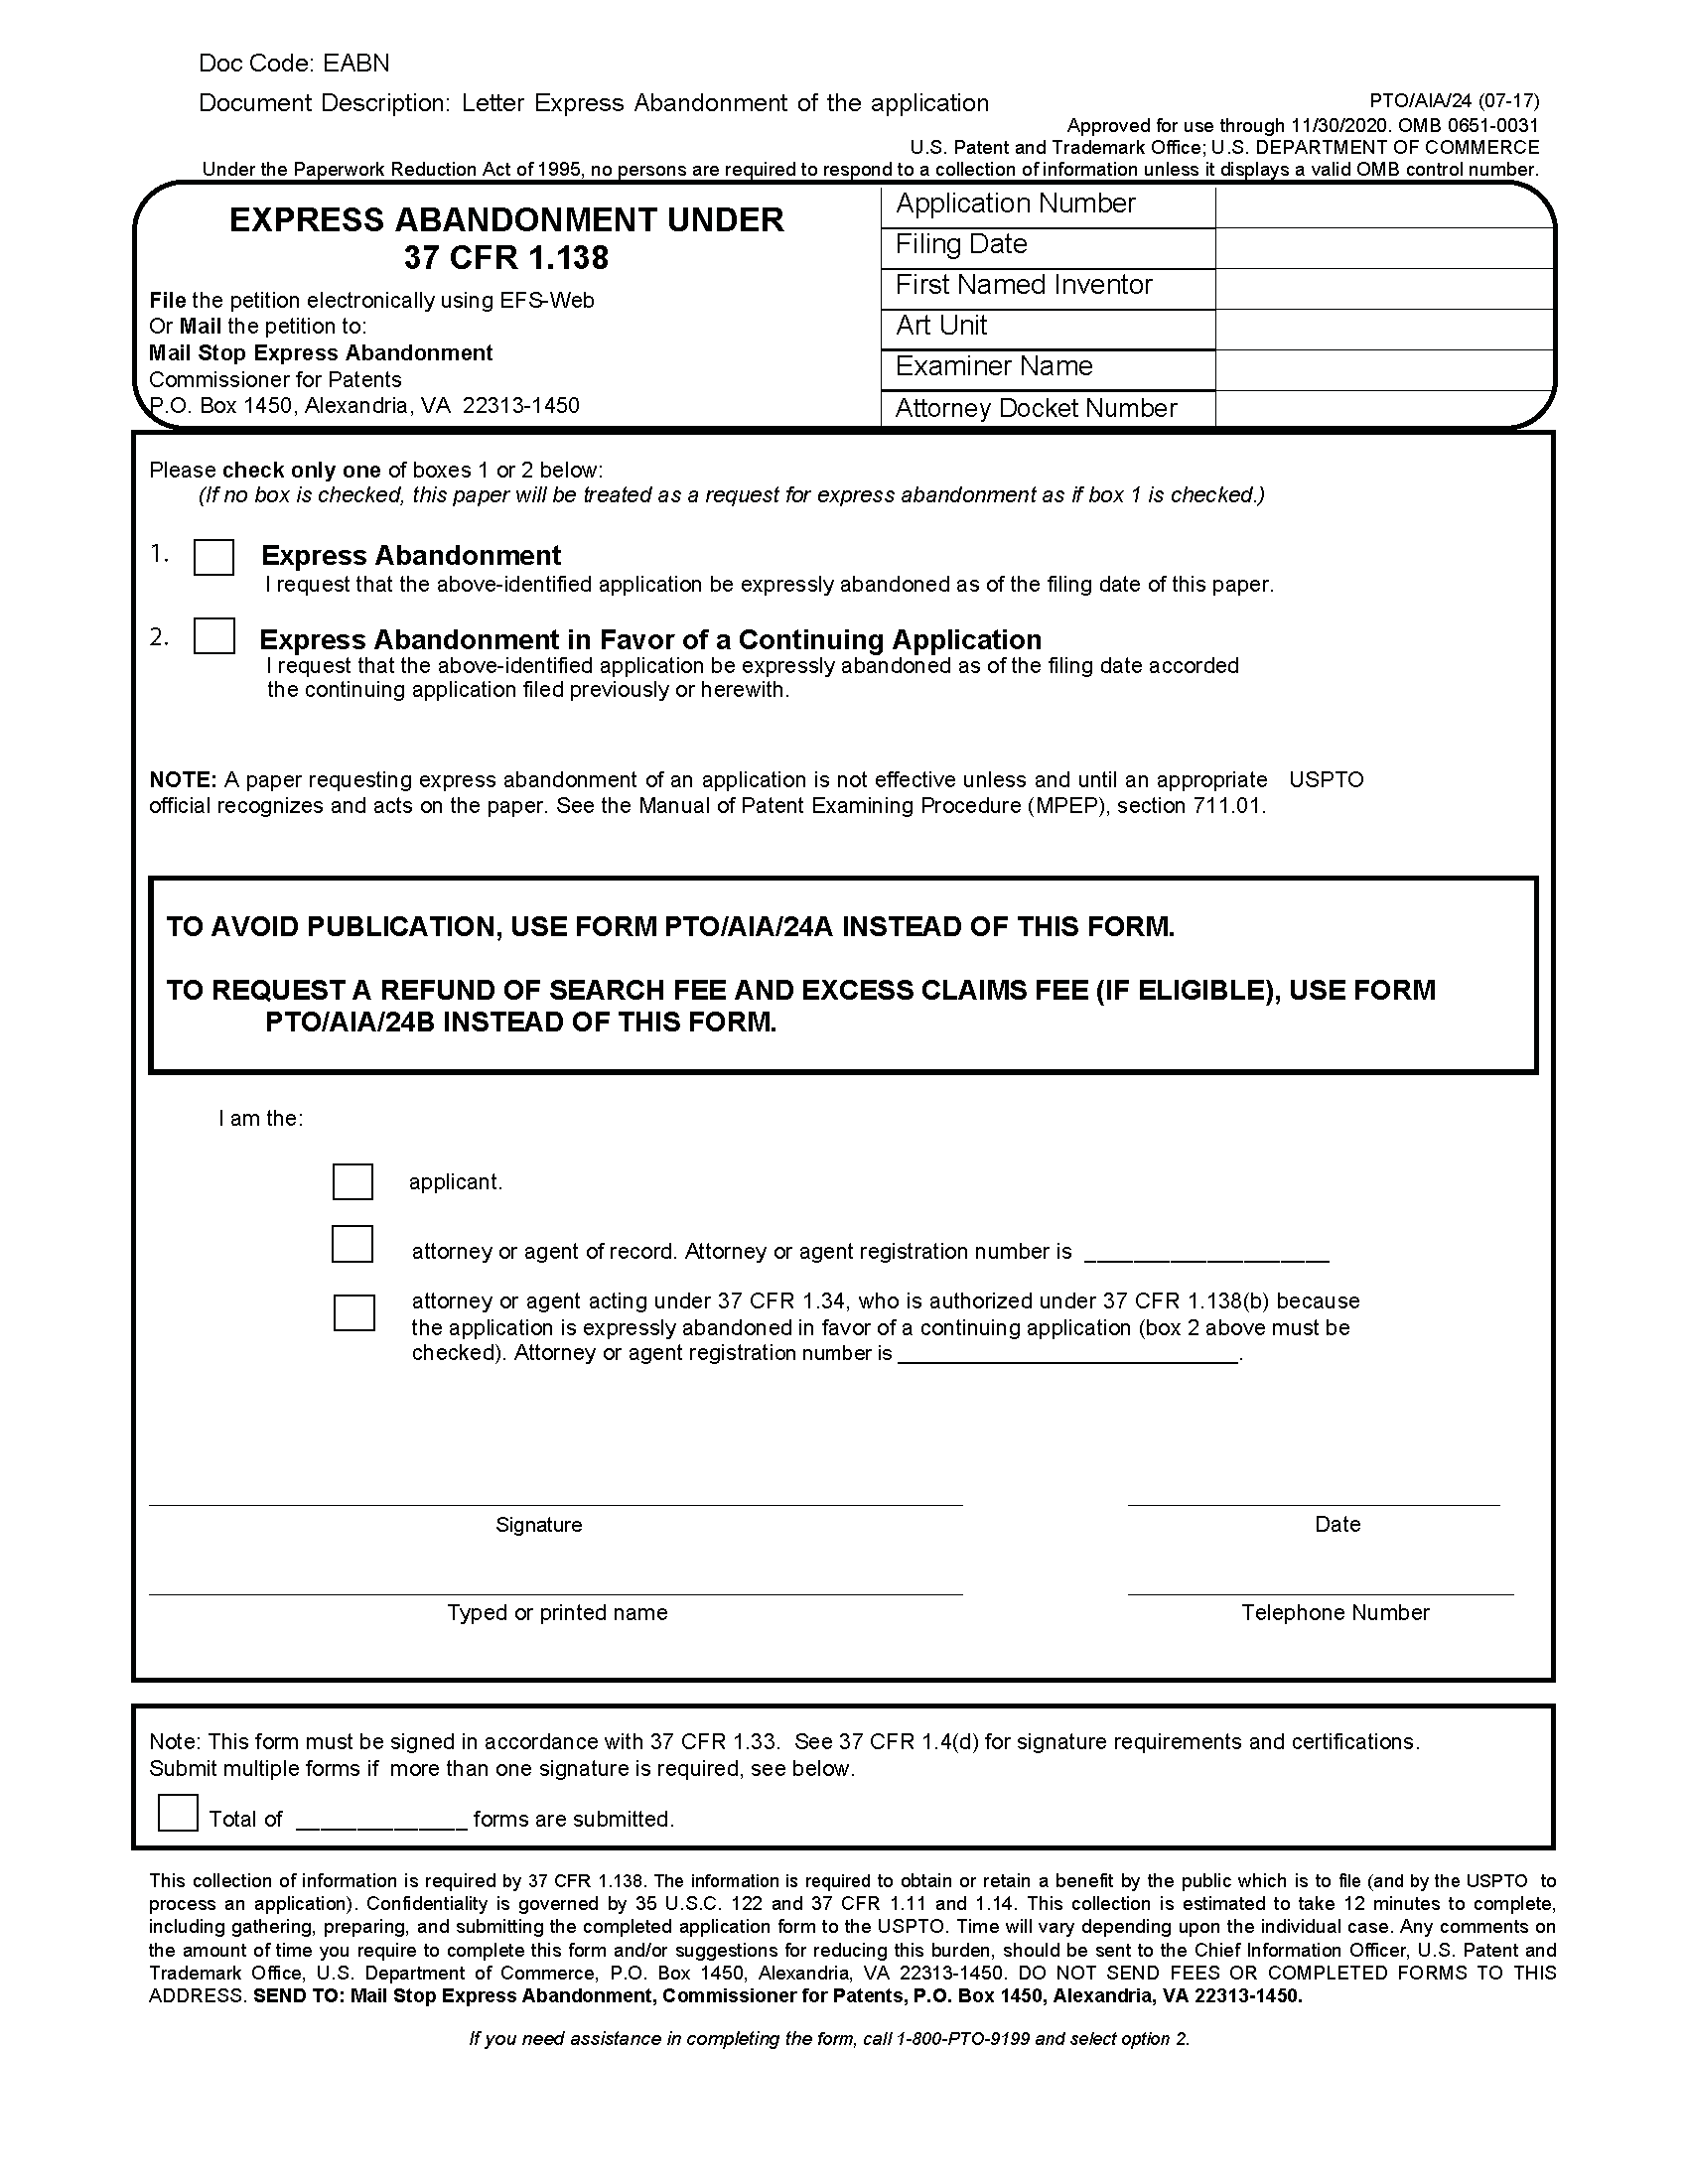 form ptosb24 express abandonment under 37 cfr 1138